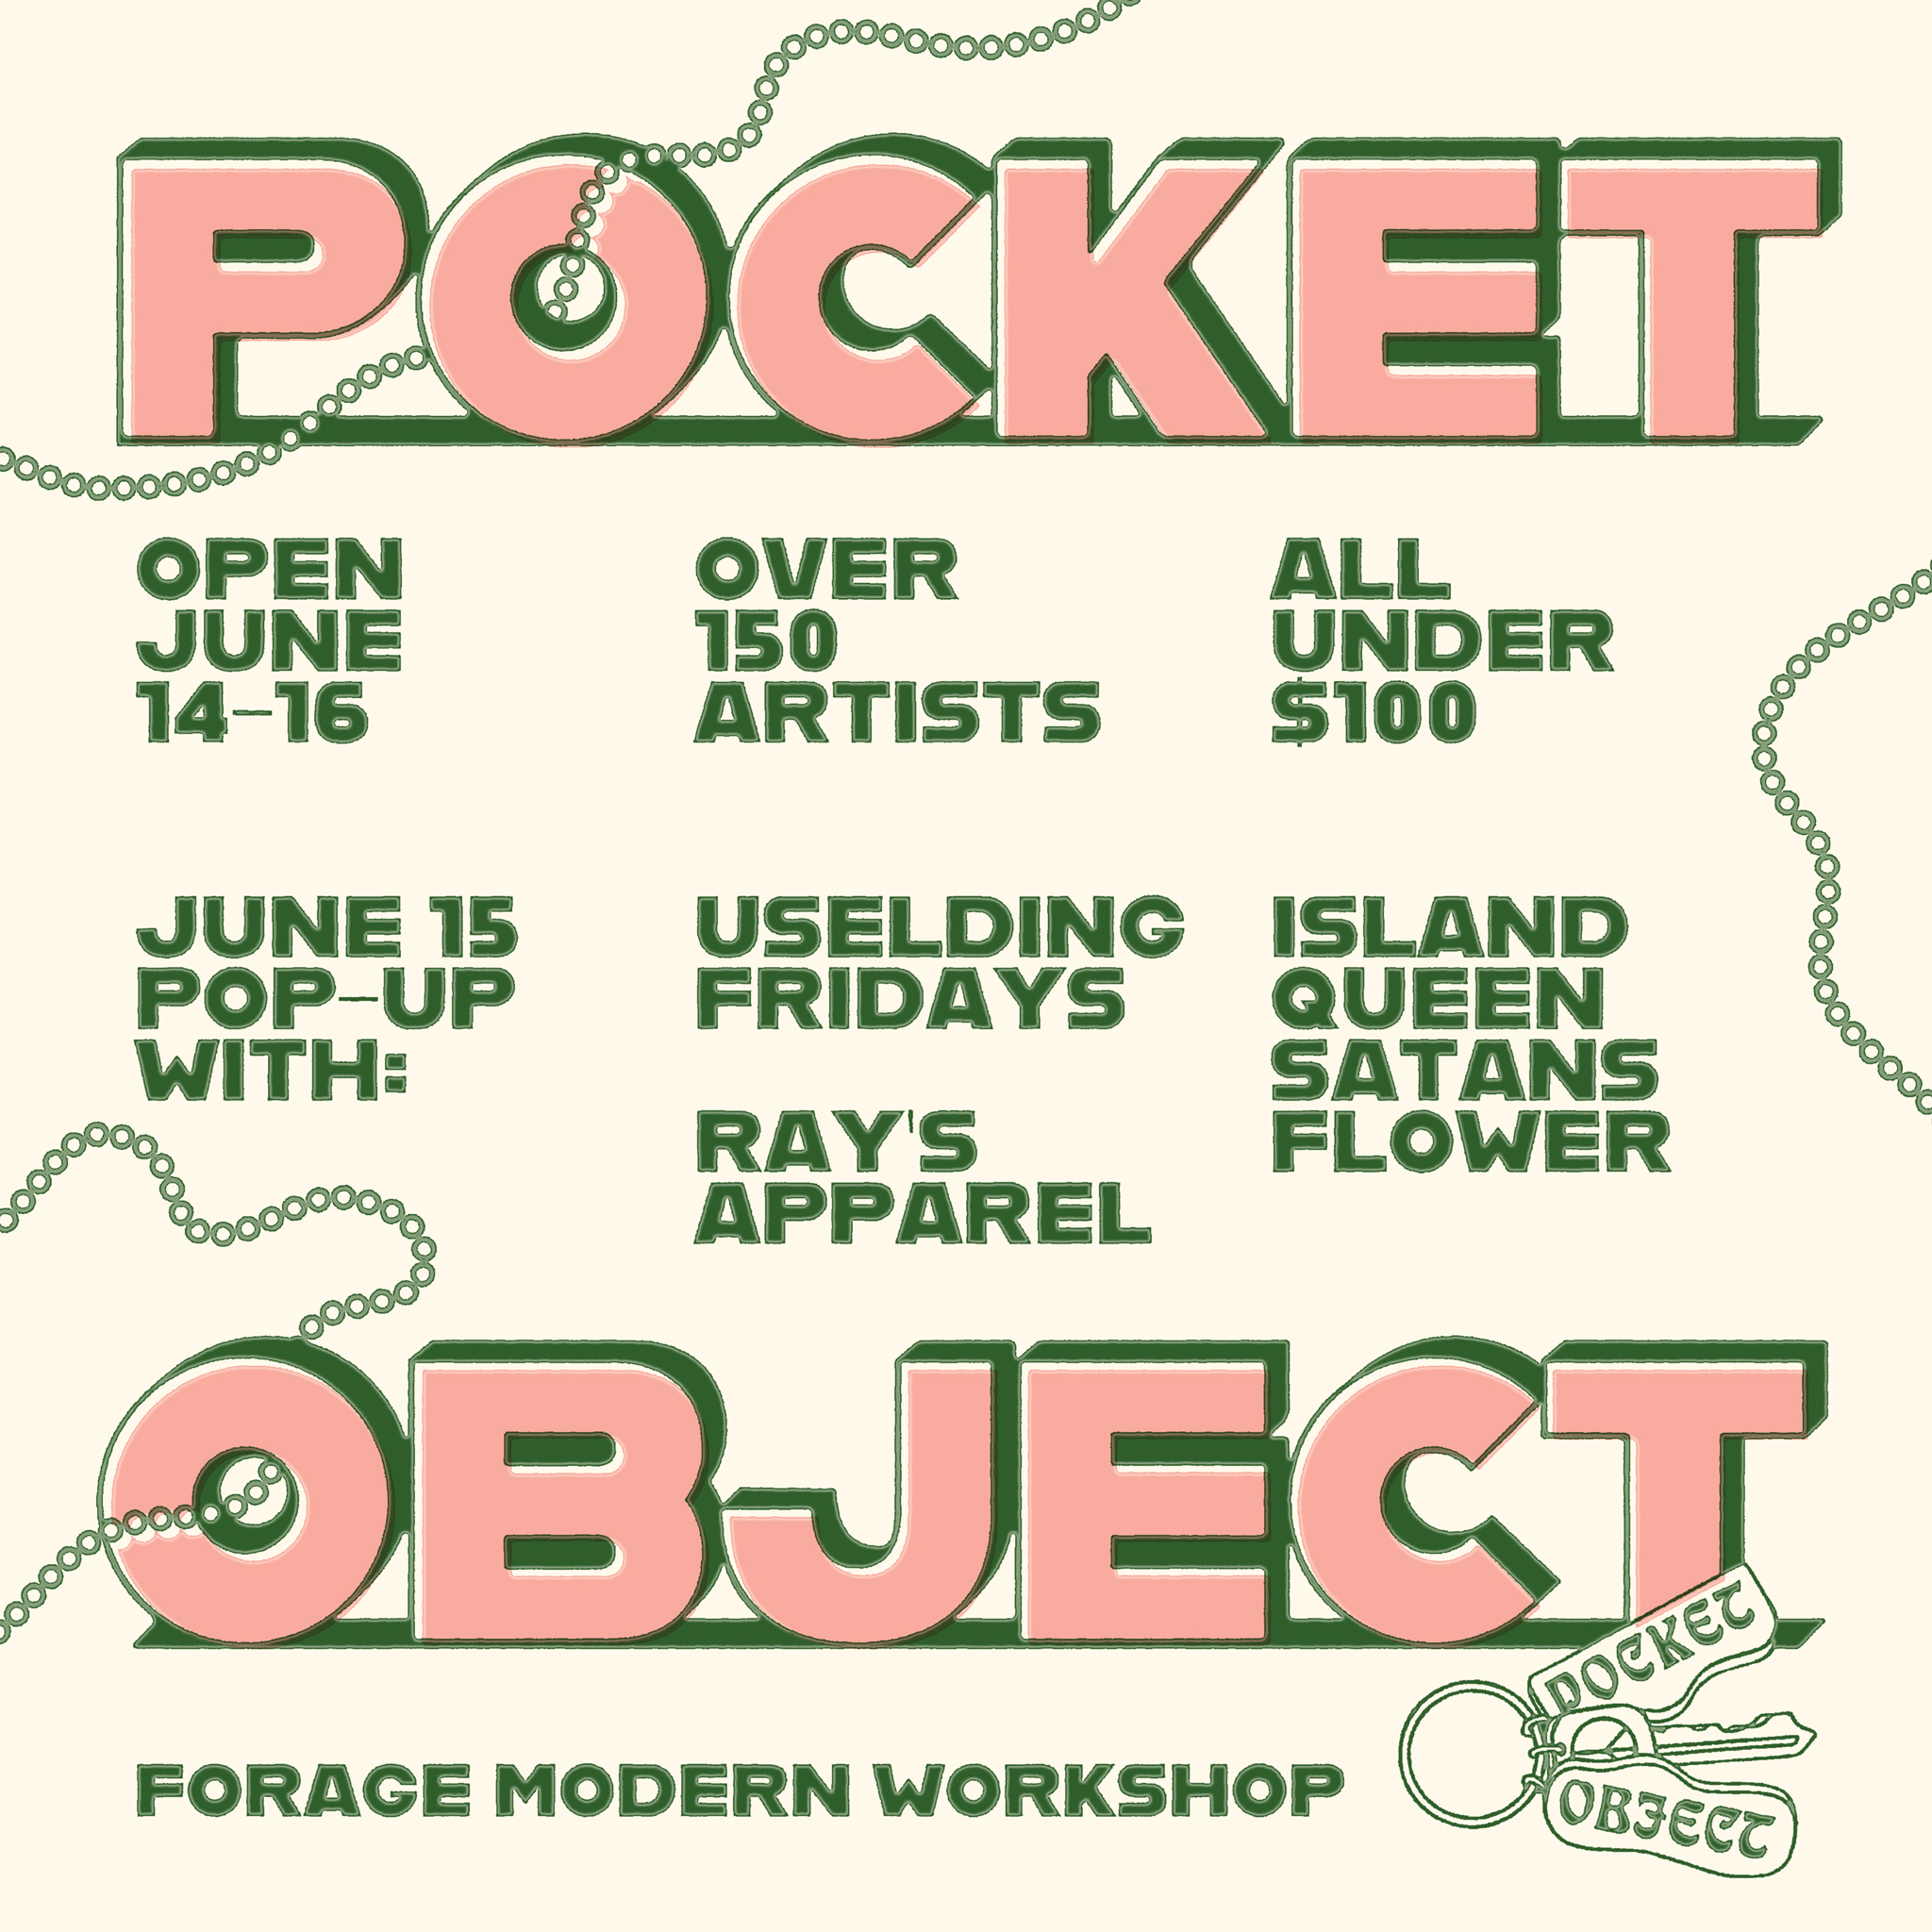 POCKET-OBJECT_IG1_V2.jpg